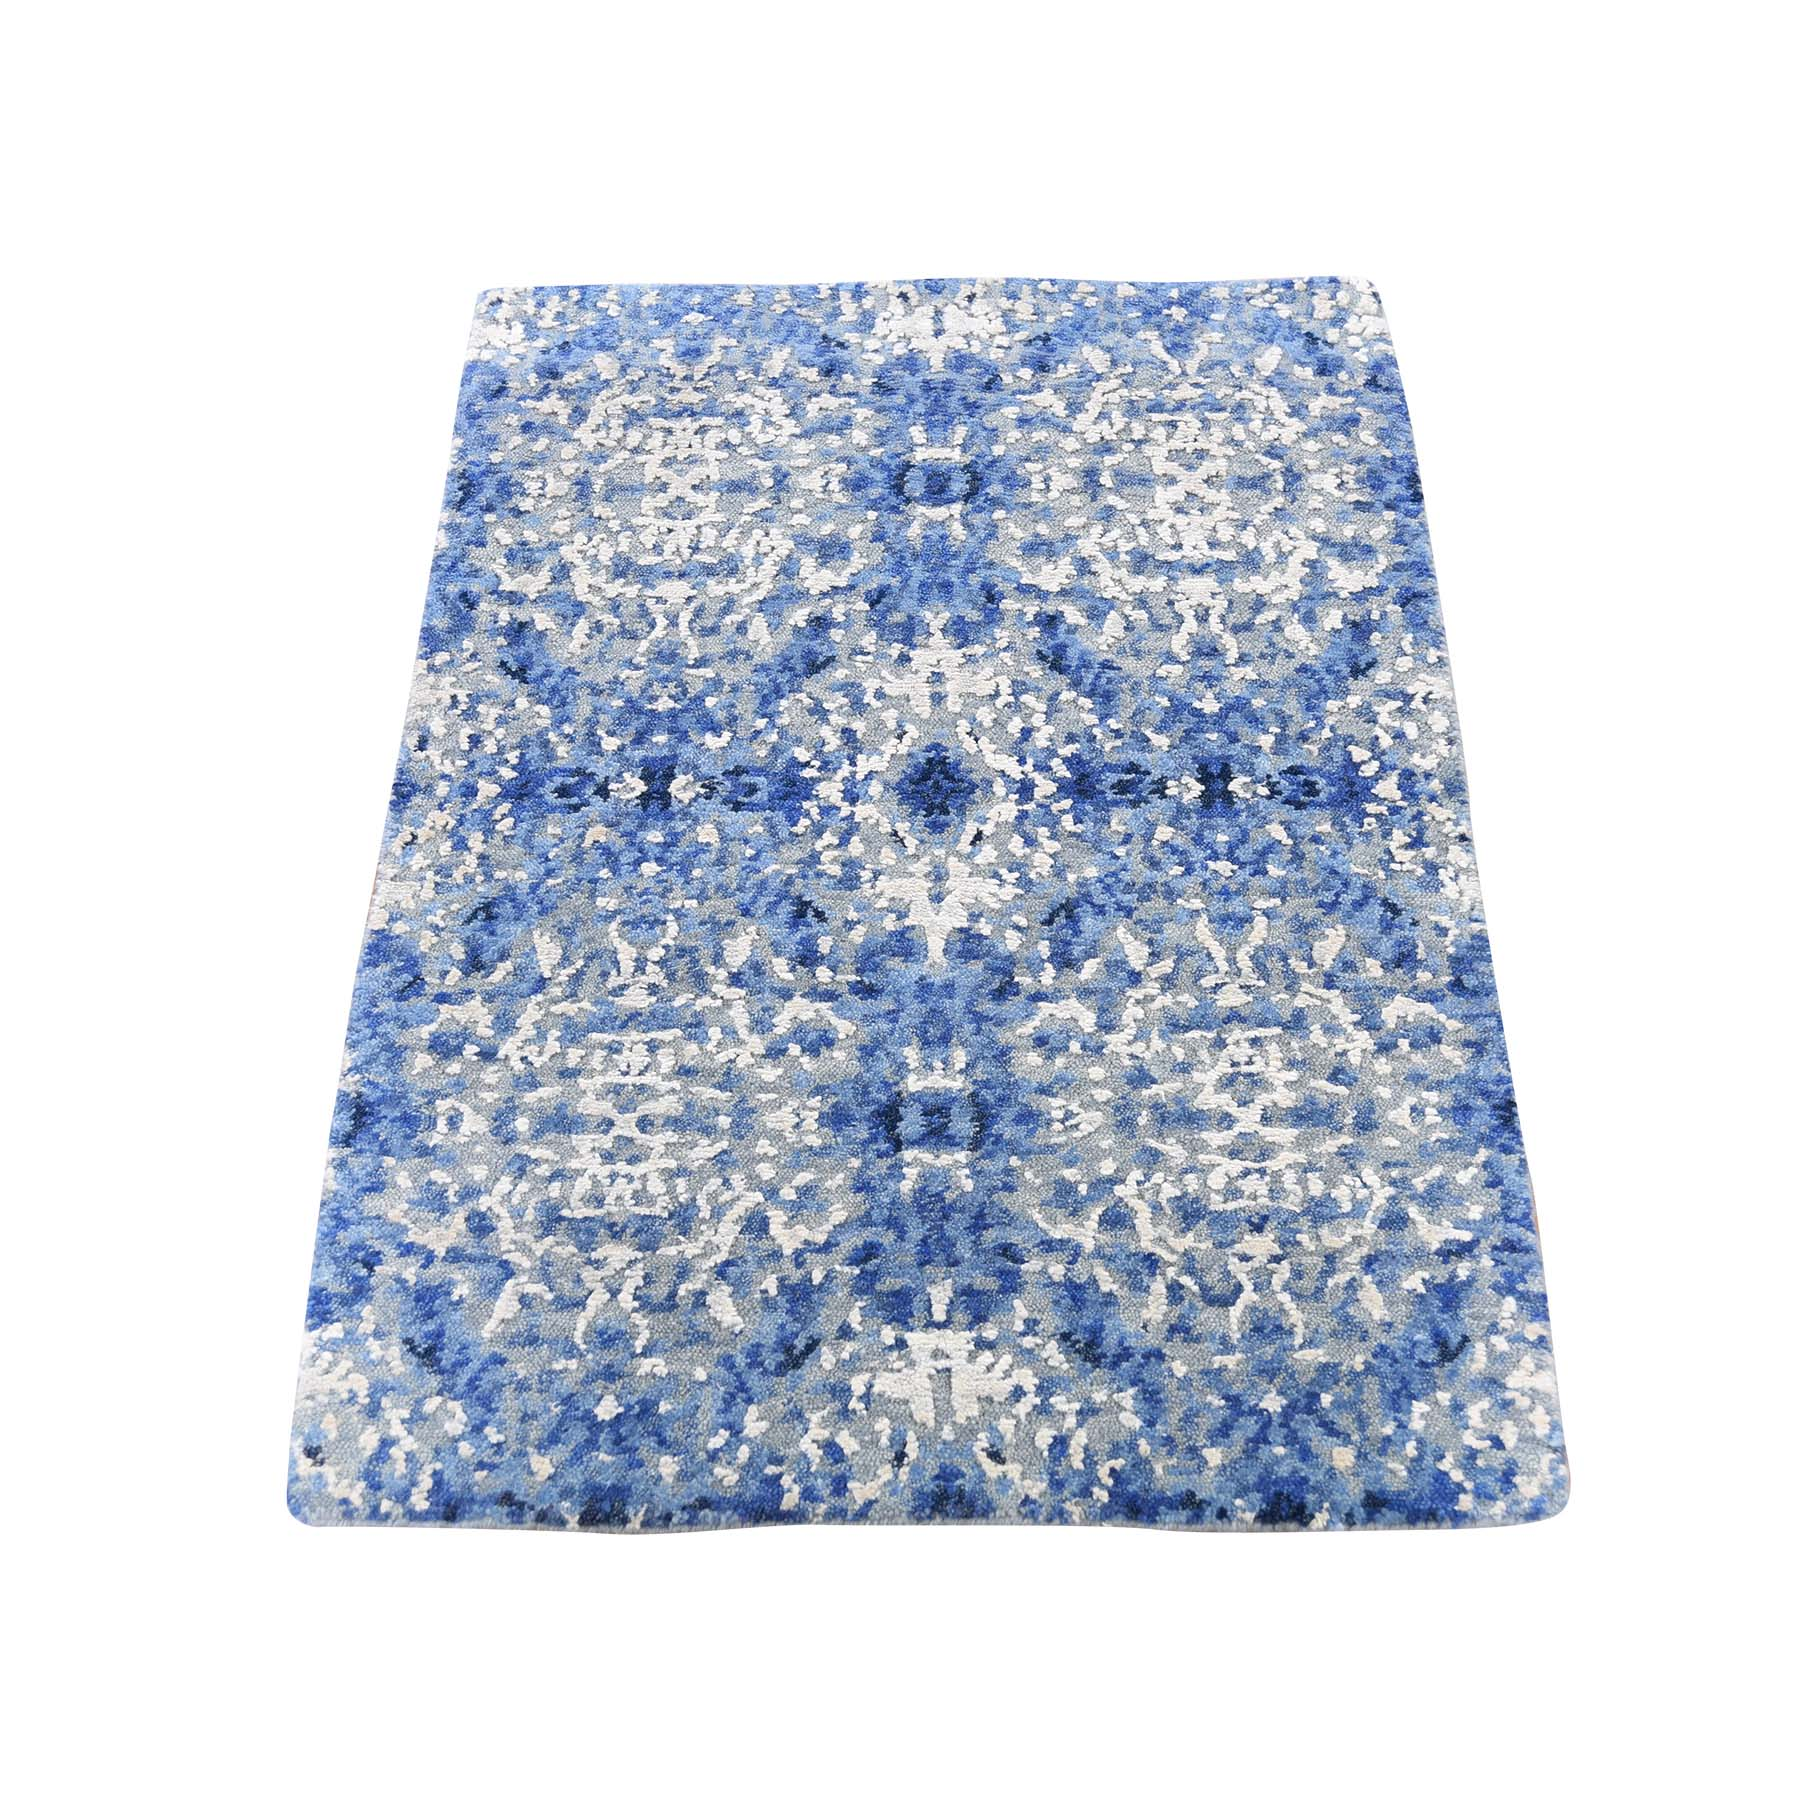 Mid Century Modern Collection Hand Knotted Blue Rug No: 0187772